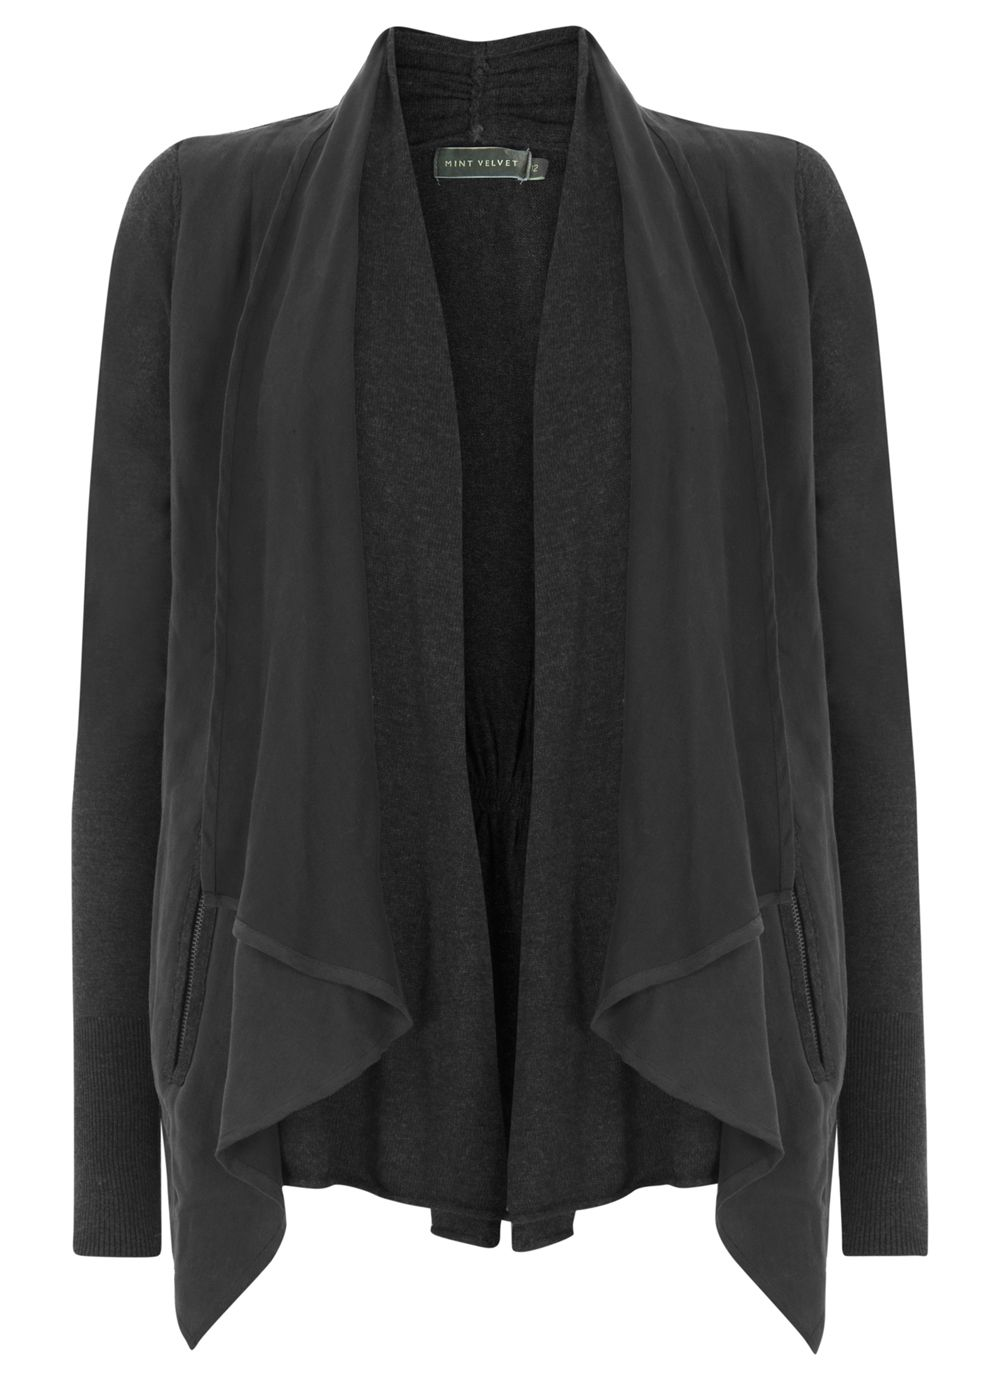 Waterfall front jacket